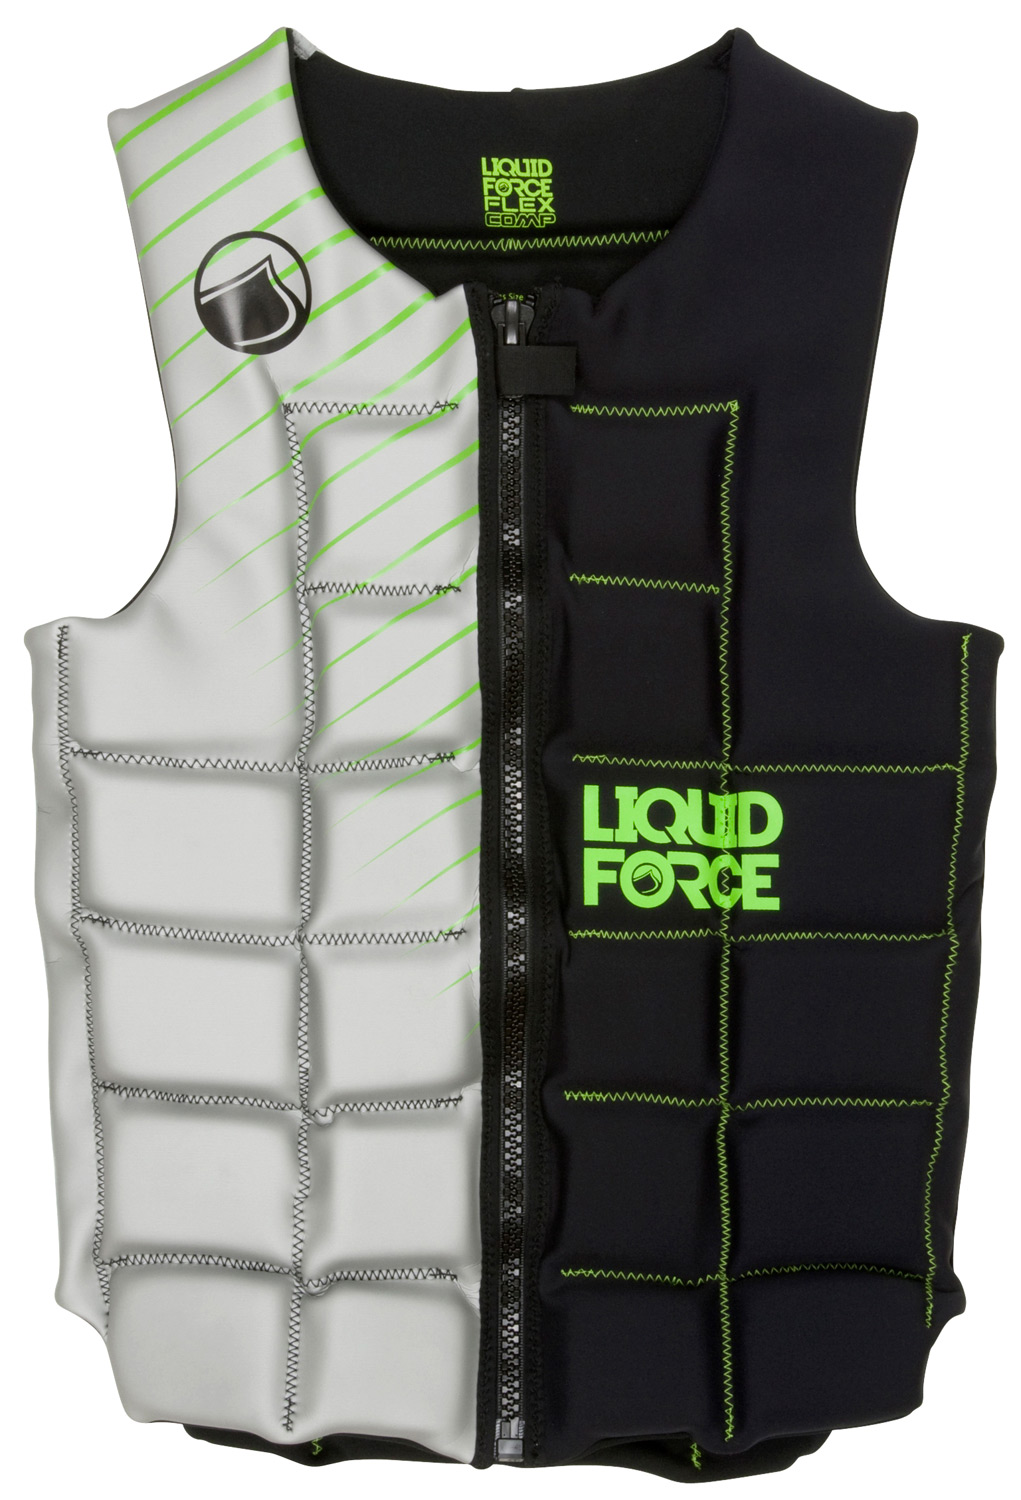 Wake The Liquid Force team was looking for comfortable, flexible vest that fit every one.  The Flex Comp  has all the flexibility of our pullover vests but ease of entry of a front zipper.  Fully segmented design, wide neck and arm openings makes this the vest for every one in the boat.    Get you size and rock out in the Flex.Key Features of the Liquid Force Flex Comp Wakeboard Vest:  Super clean design: Increased forward flex and comfort... no buckles to get in the way  Full Front Zip: The full zipper makes it easier to get into and out of.  Segmented Foam Panels: Designed to fit you perfectly  Super-Stretch Neoprene: Flex panels allow Vest: Extra space and comfort for added mobility  Strapless design: Clean and simple with nothing to get in your way on handle passes. - $98.95